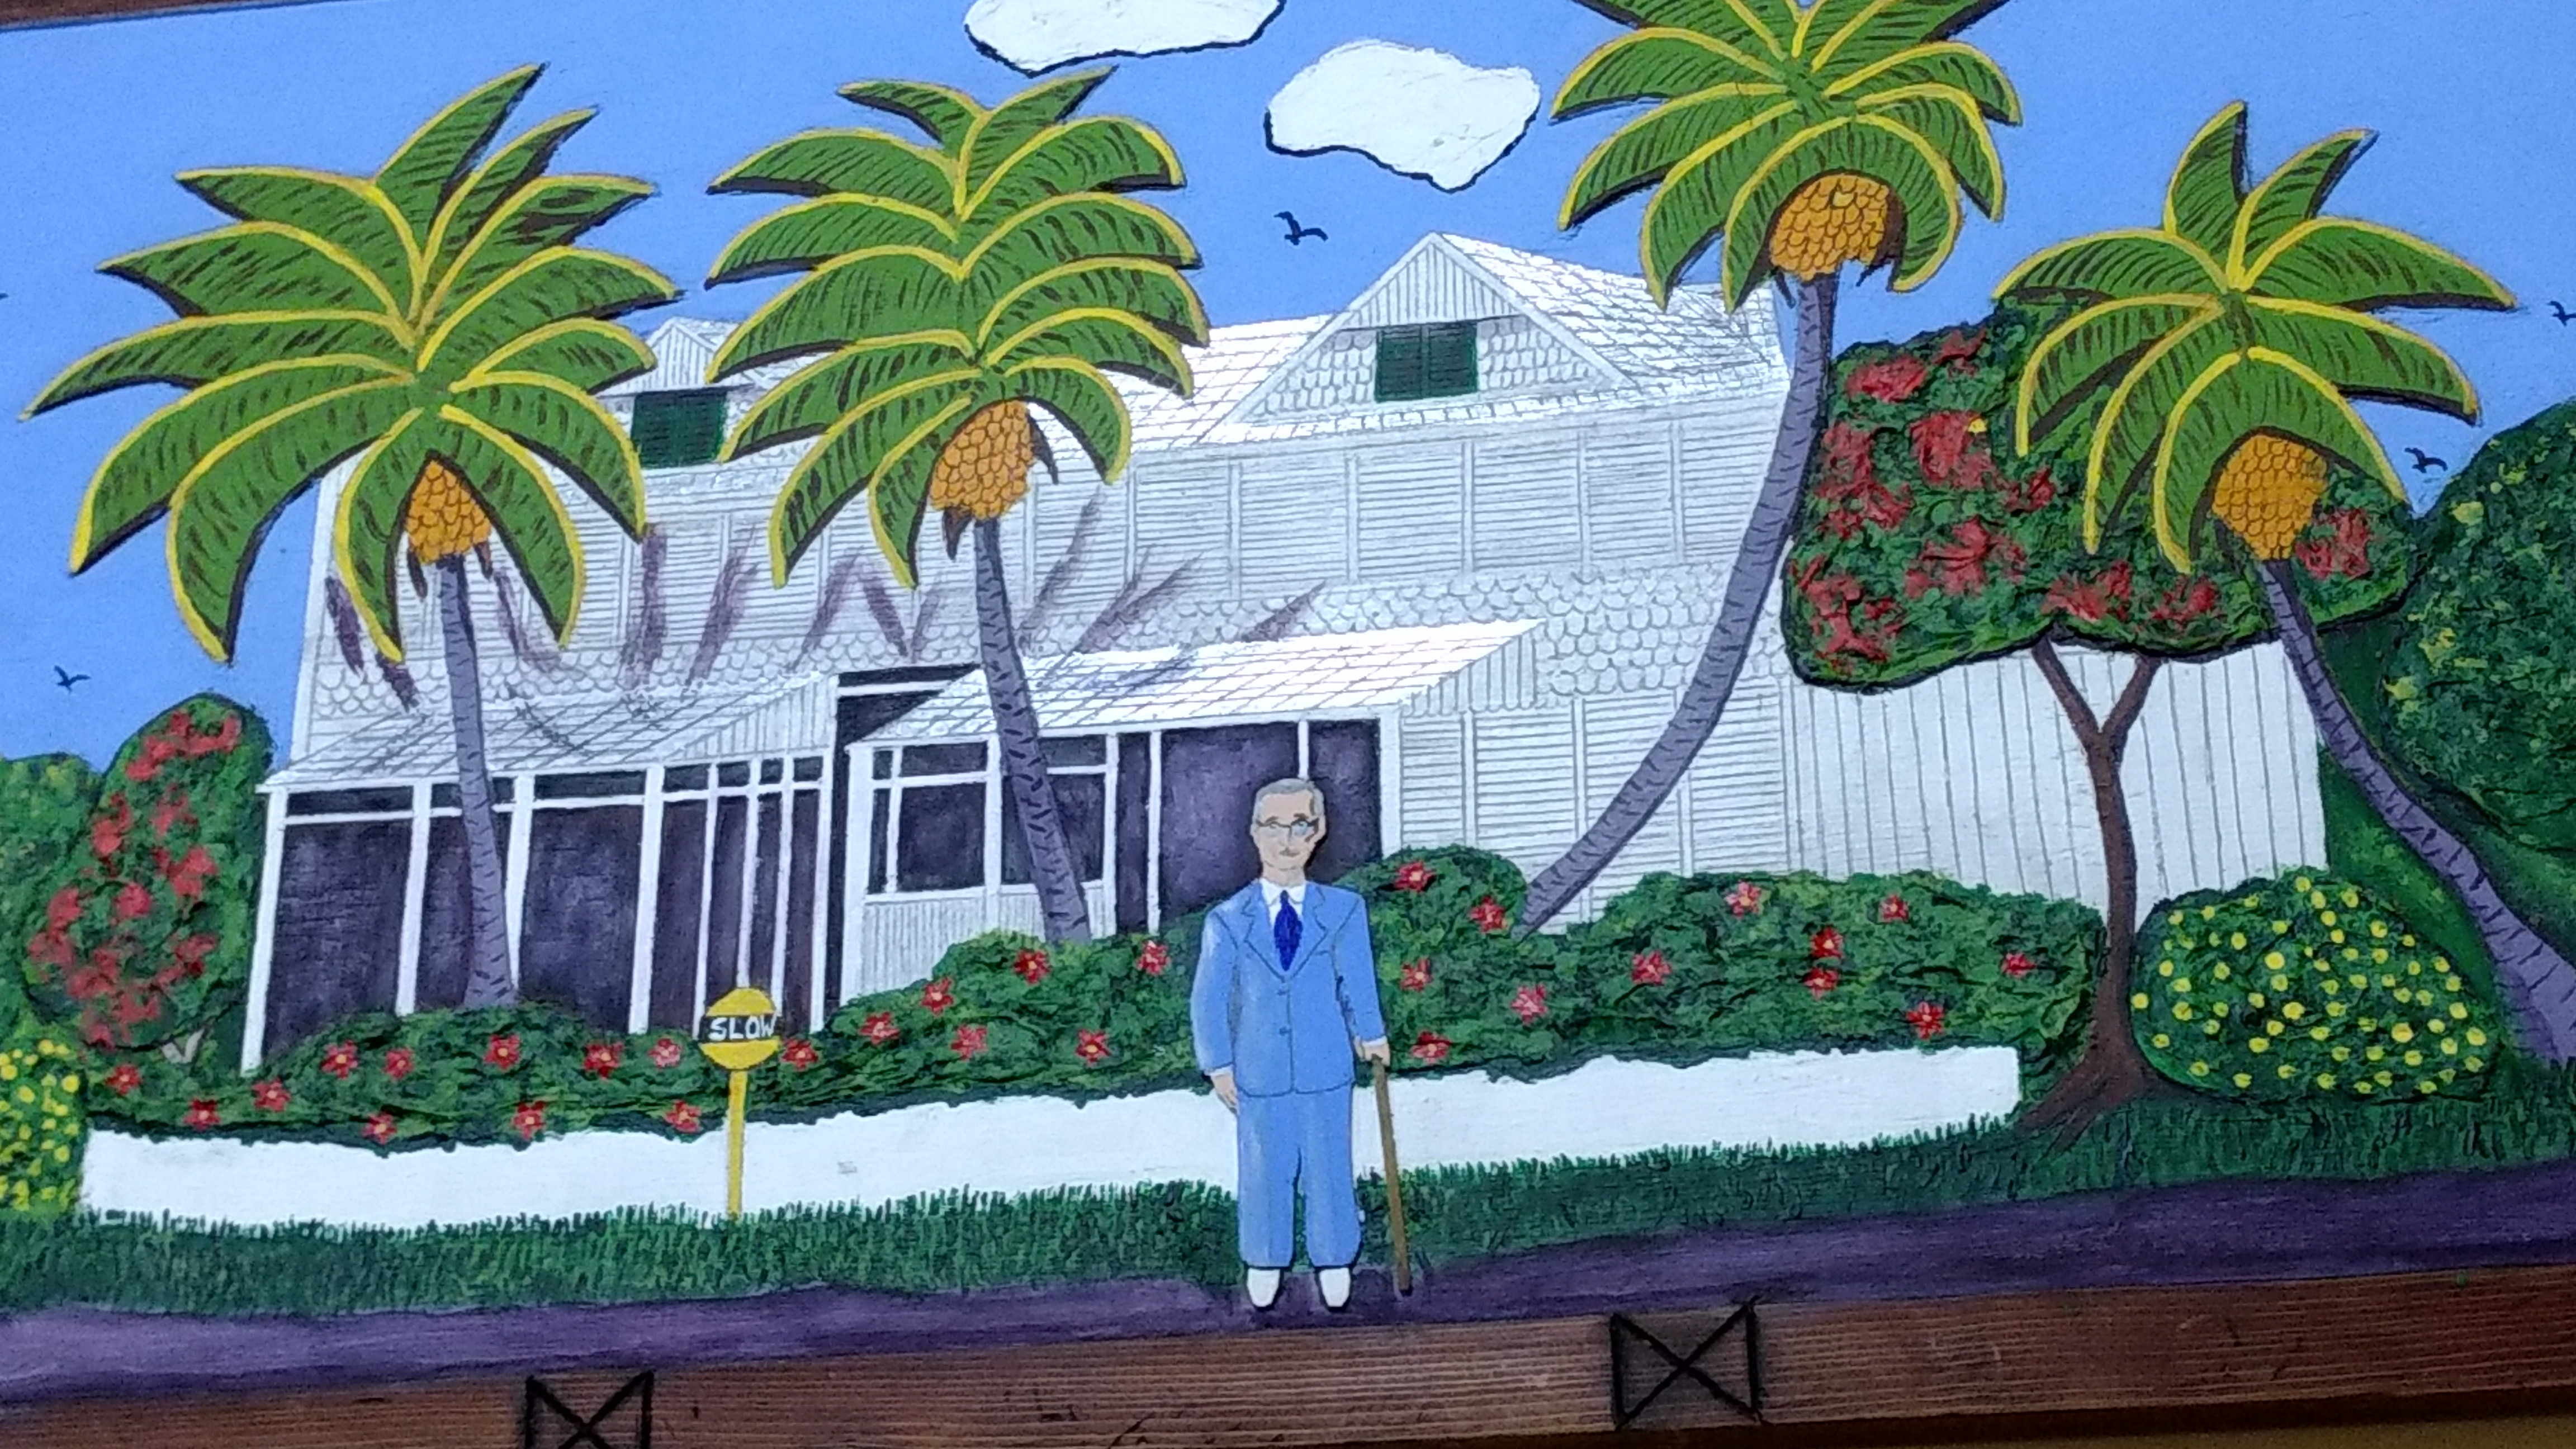 a painting of Truman in front of the Little White House located in the exhibition room.